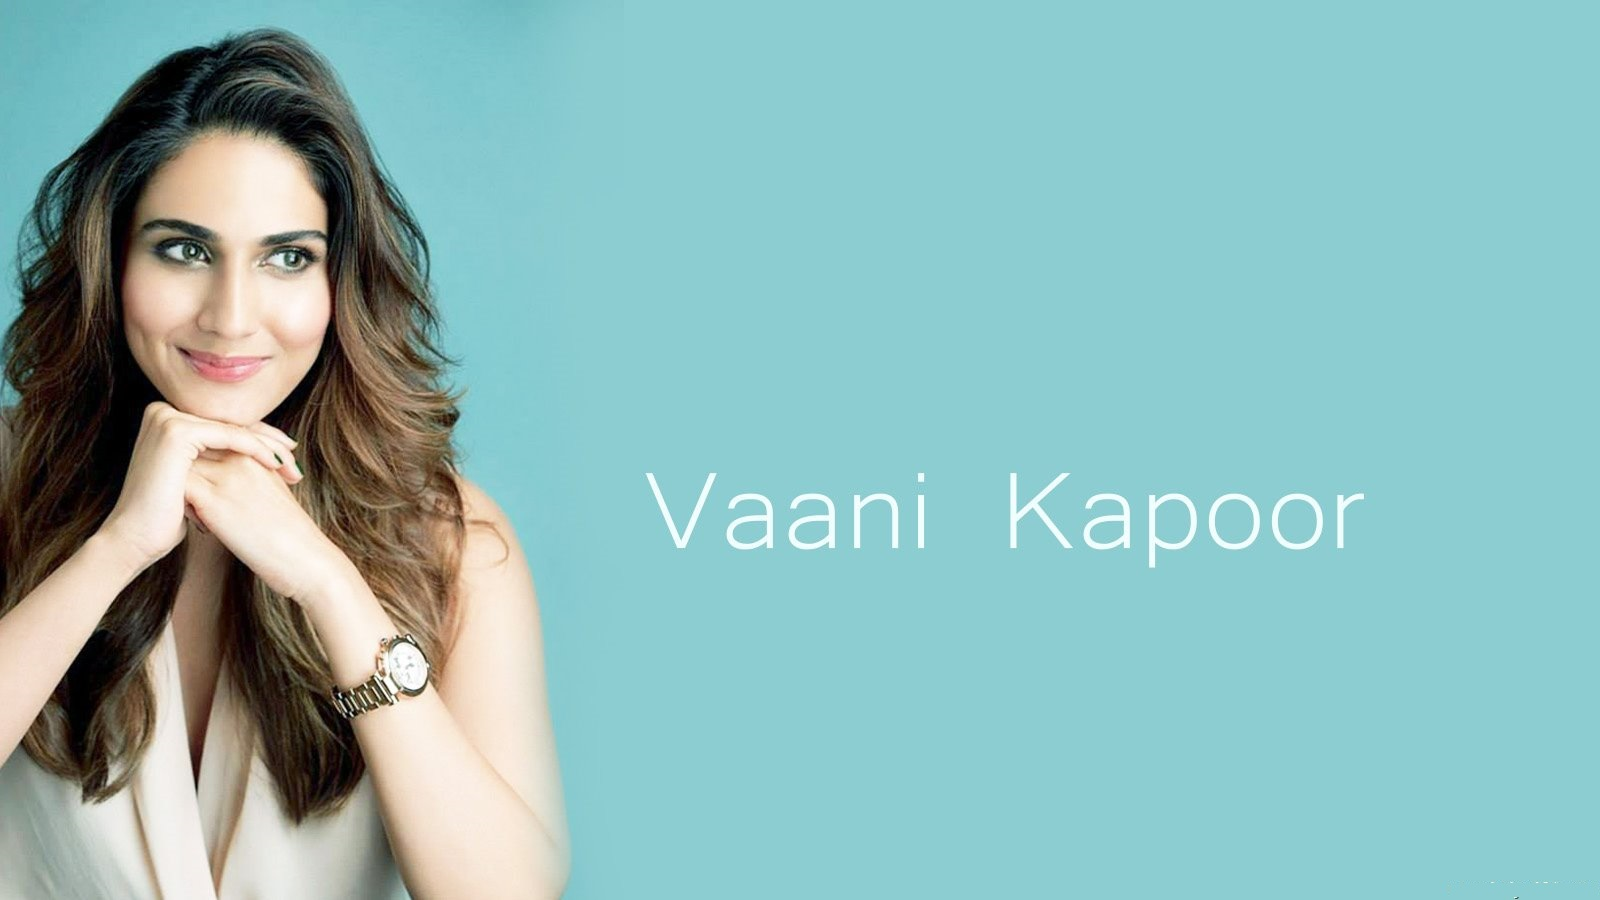 Vaani kapoor actress wallpaper